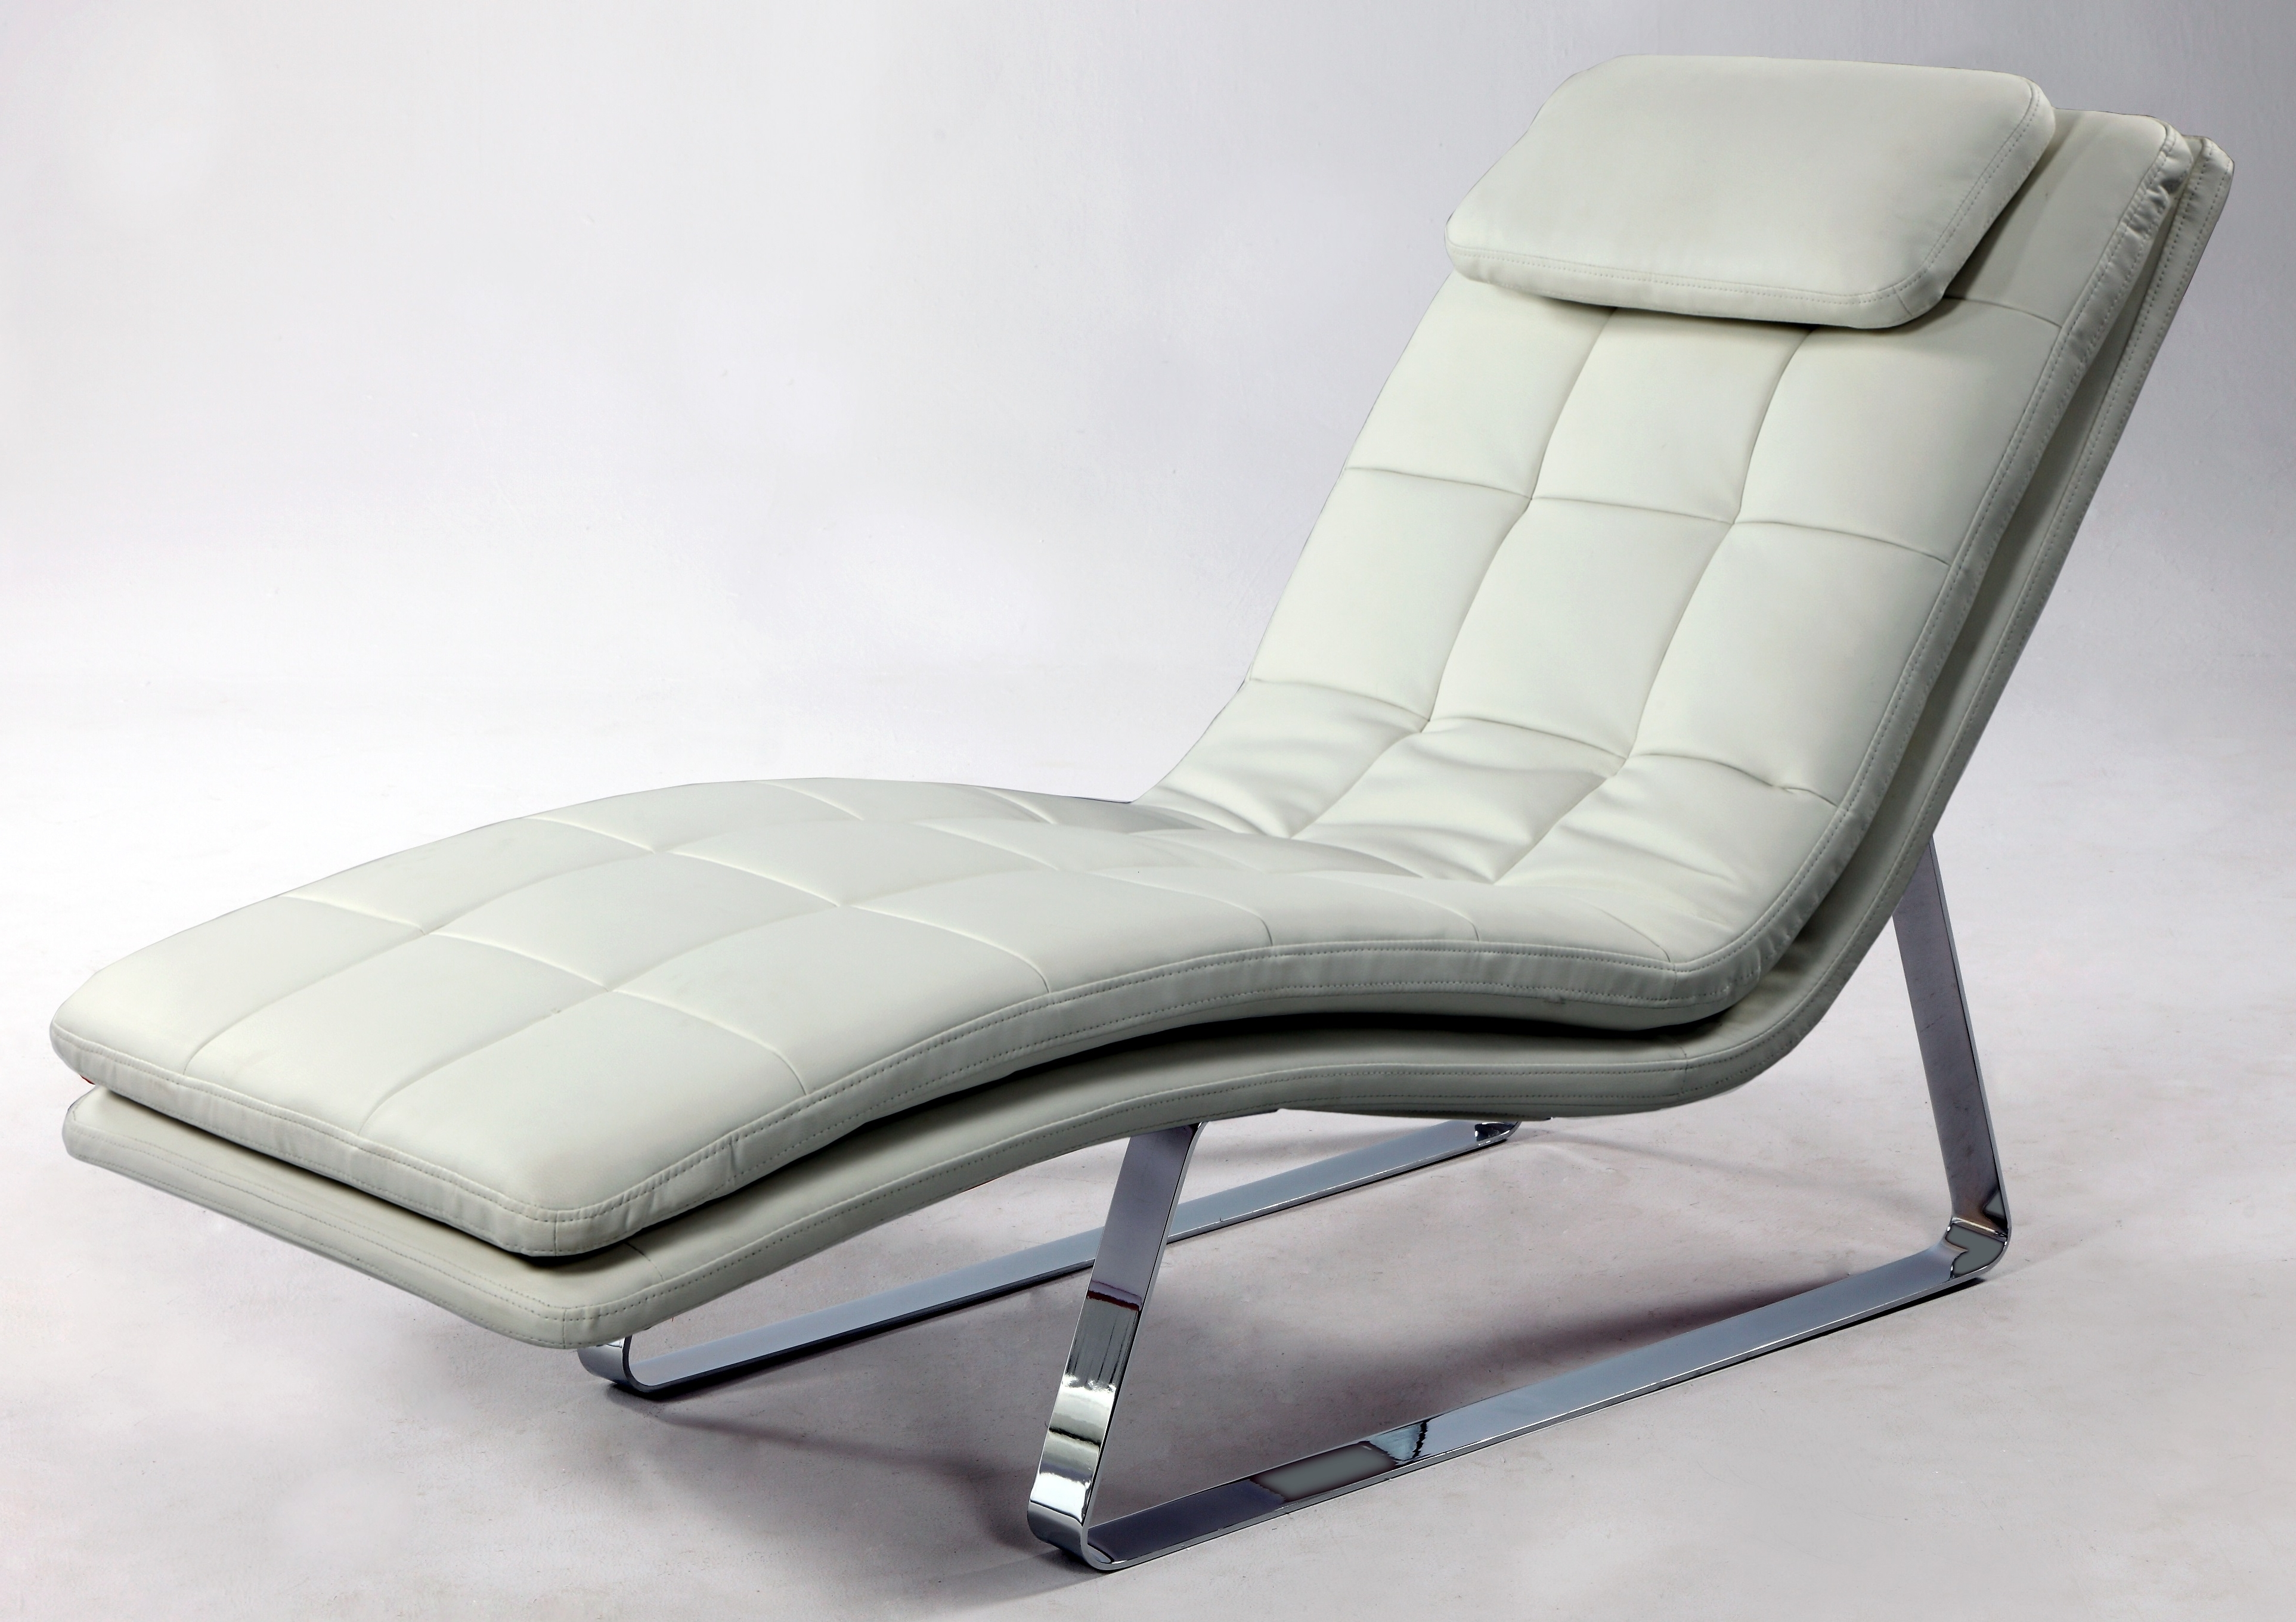 Well Known Full Bonded Leather Tufted Chaise Lounge With Chrome Legs New York With Regard To Modern Leather Chaise Longues (View 14 of 15)